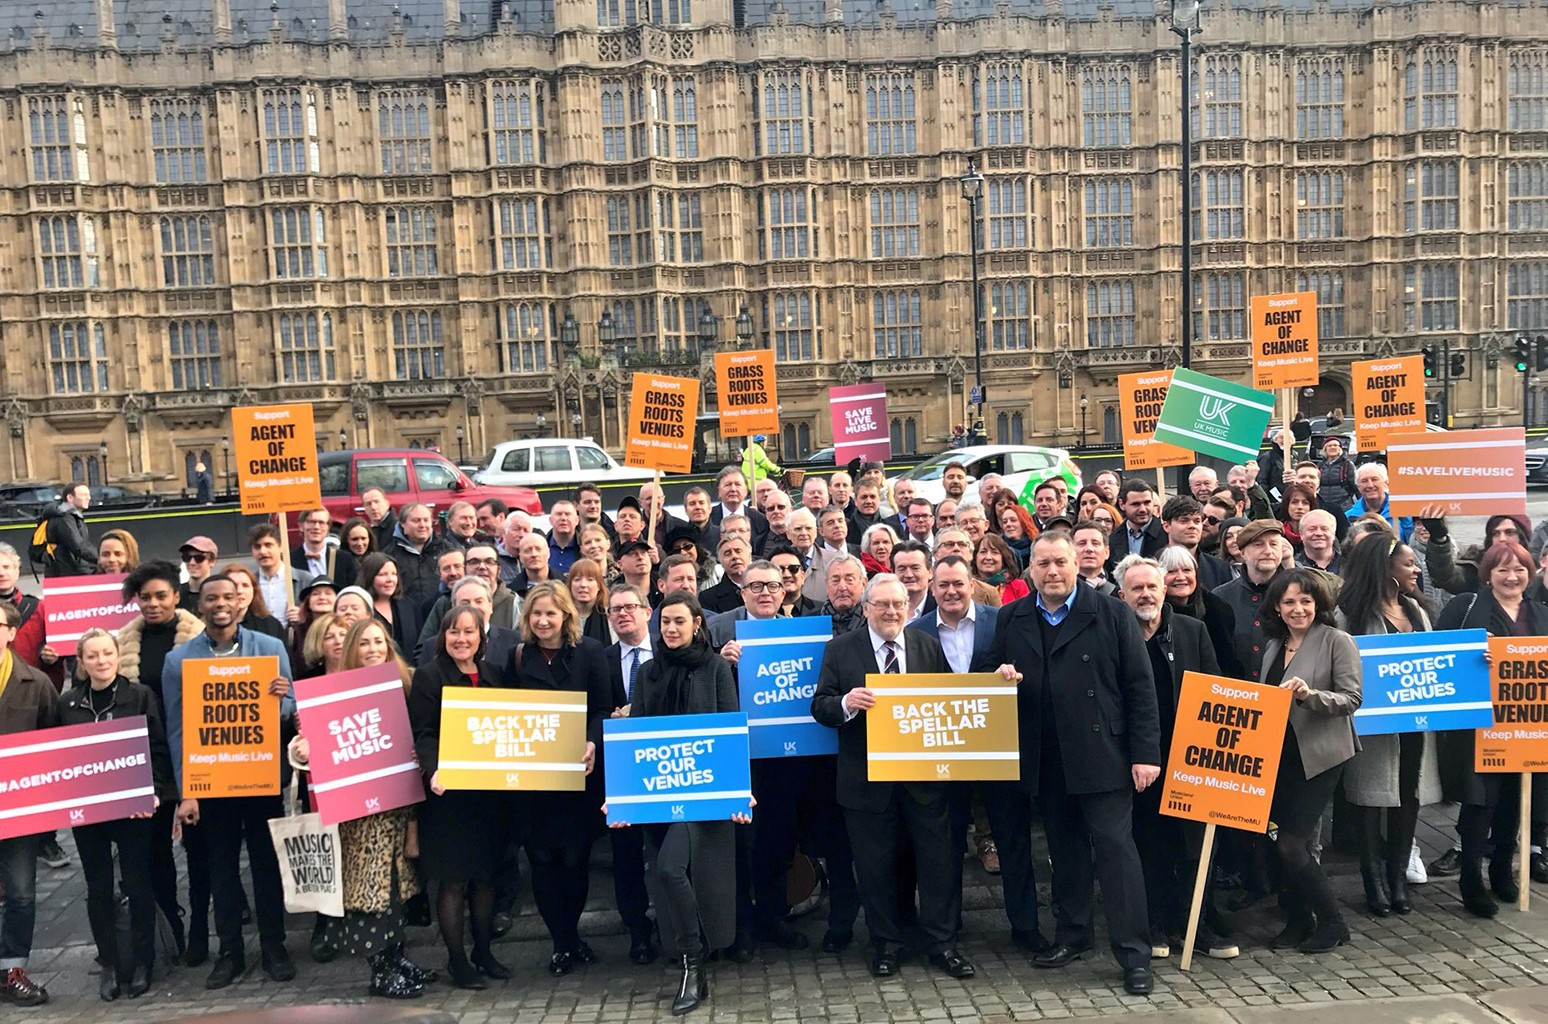 Music industry representatives gather outside Parliament in support of the agent of change bill.